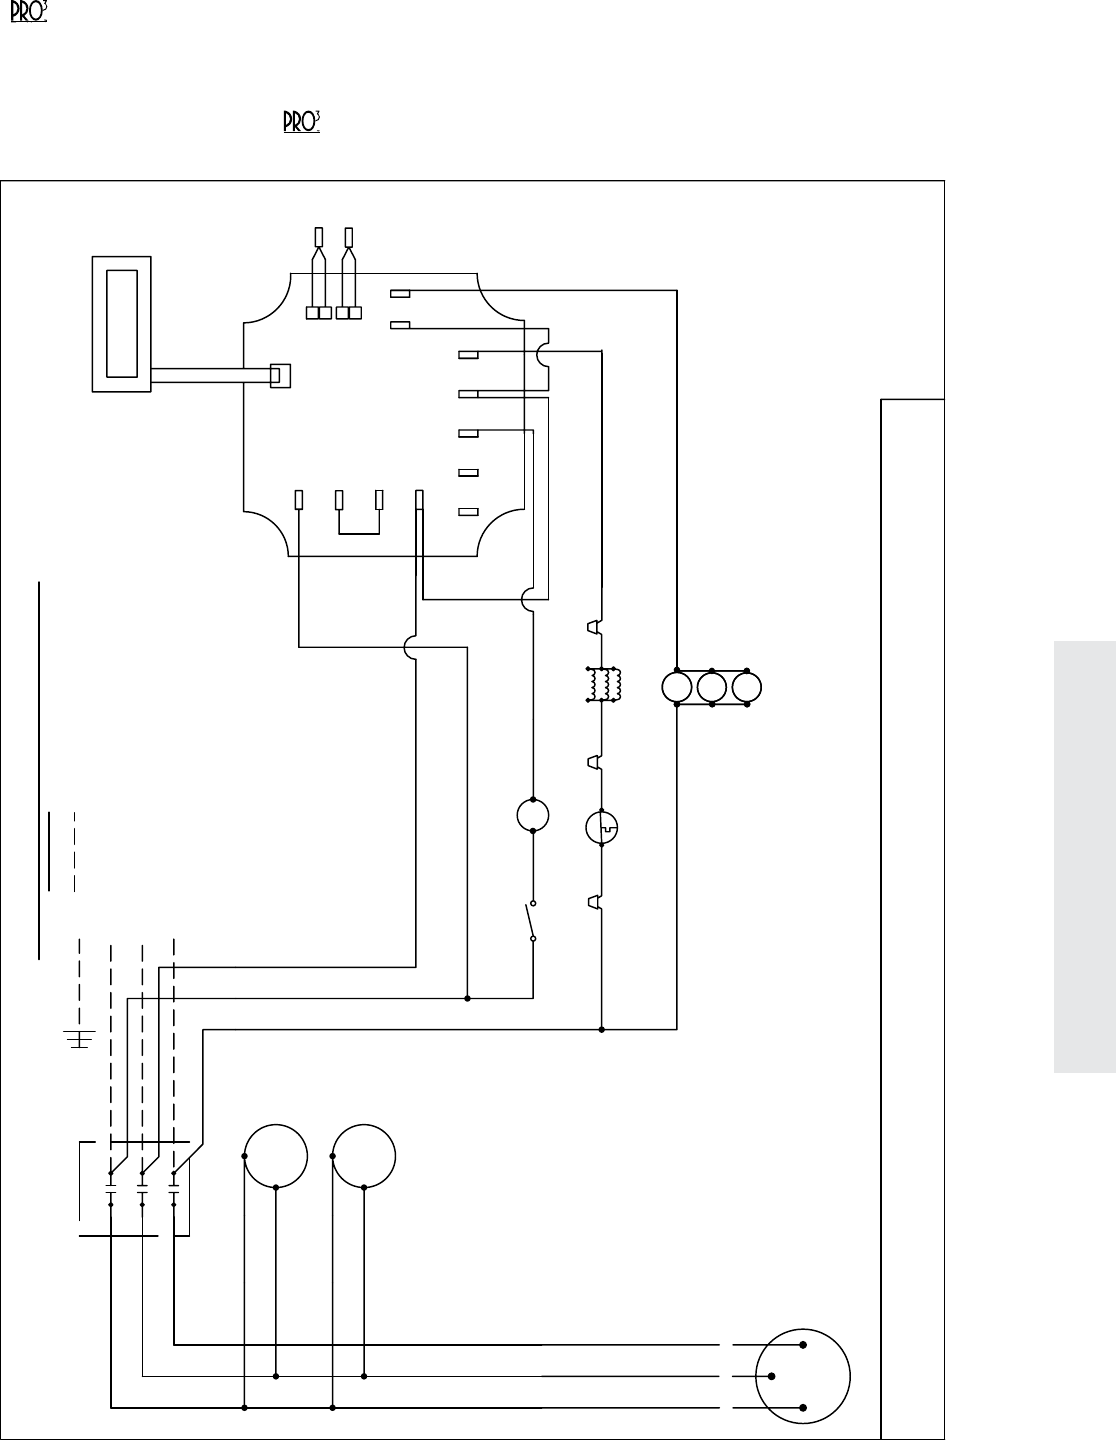 b8616a9a 7649 411a b648 d6245cba7e20 bg13 page 19 of heatcraft refrigeration products refrigerator h im 82b heatcraft freezer wiring diagram at bayanpartner.co